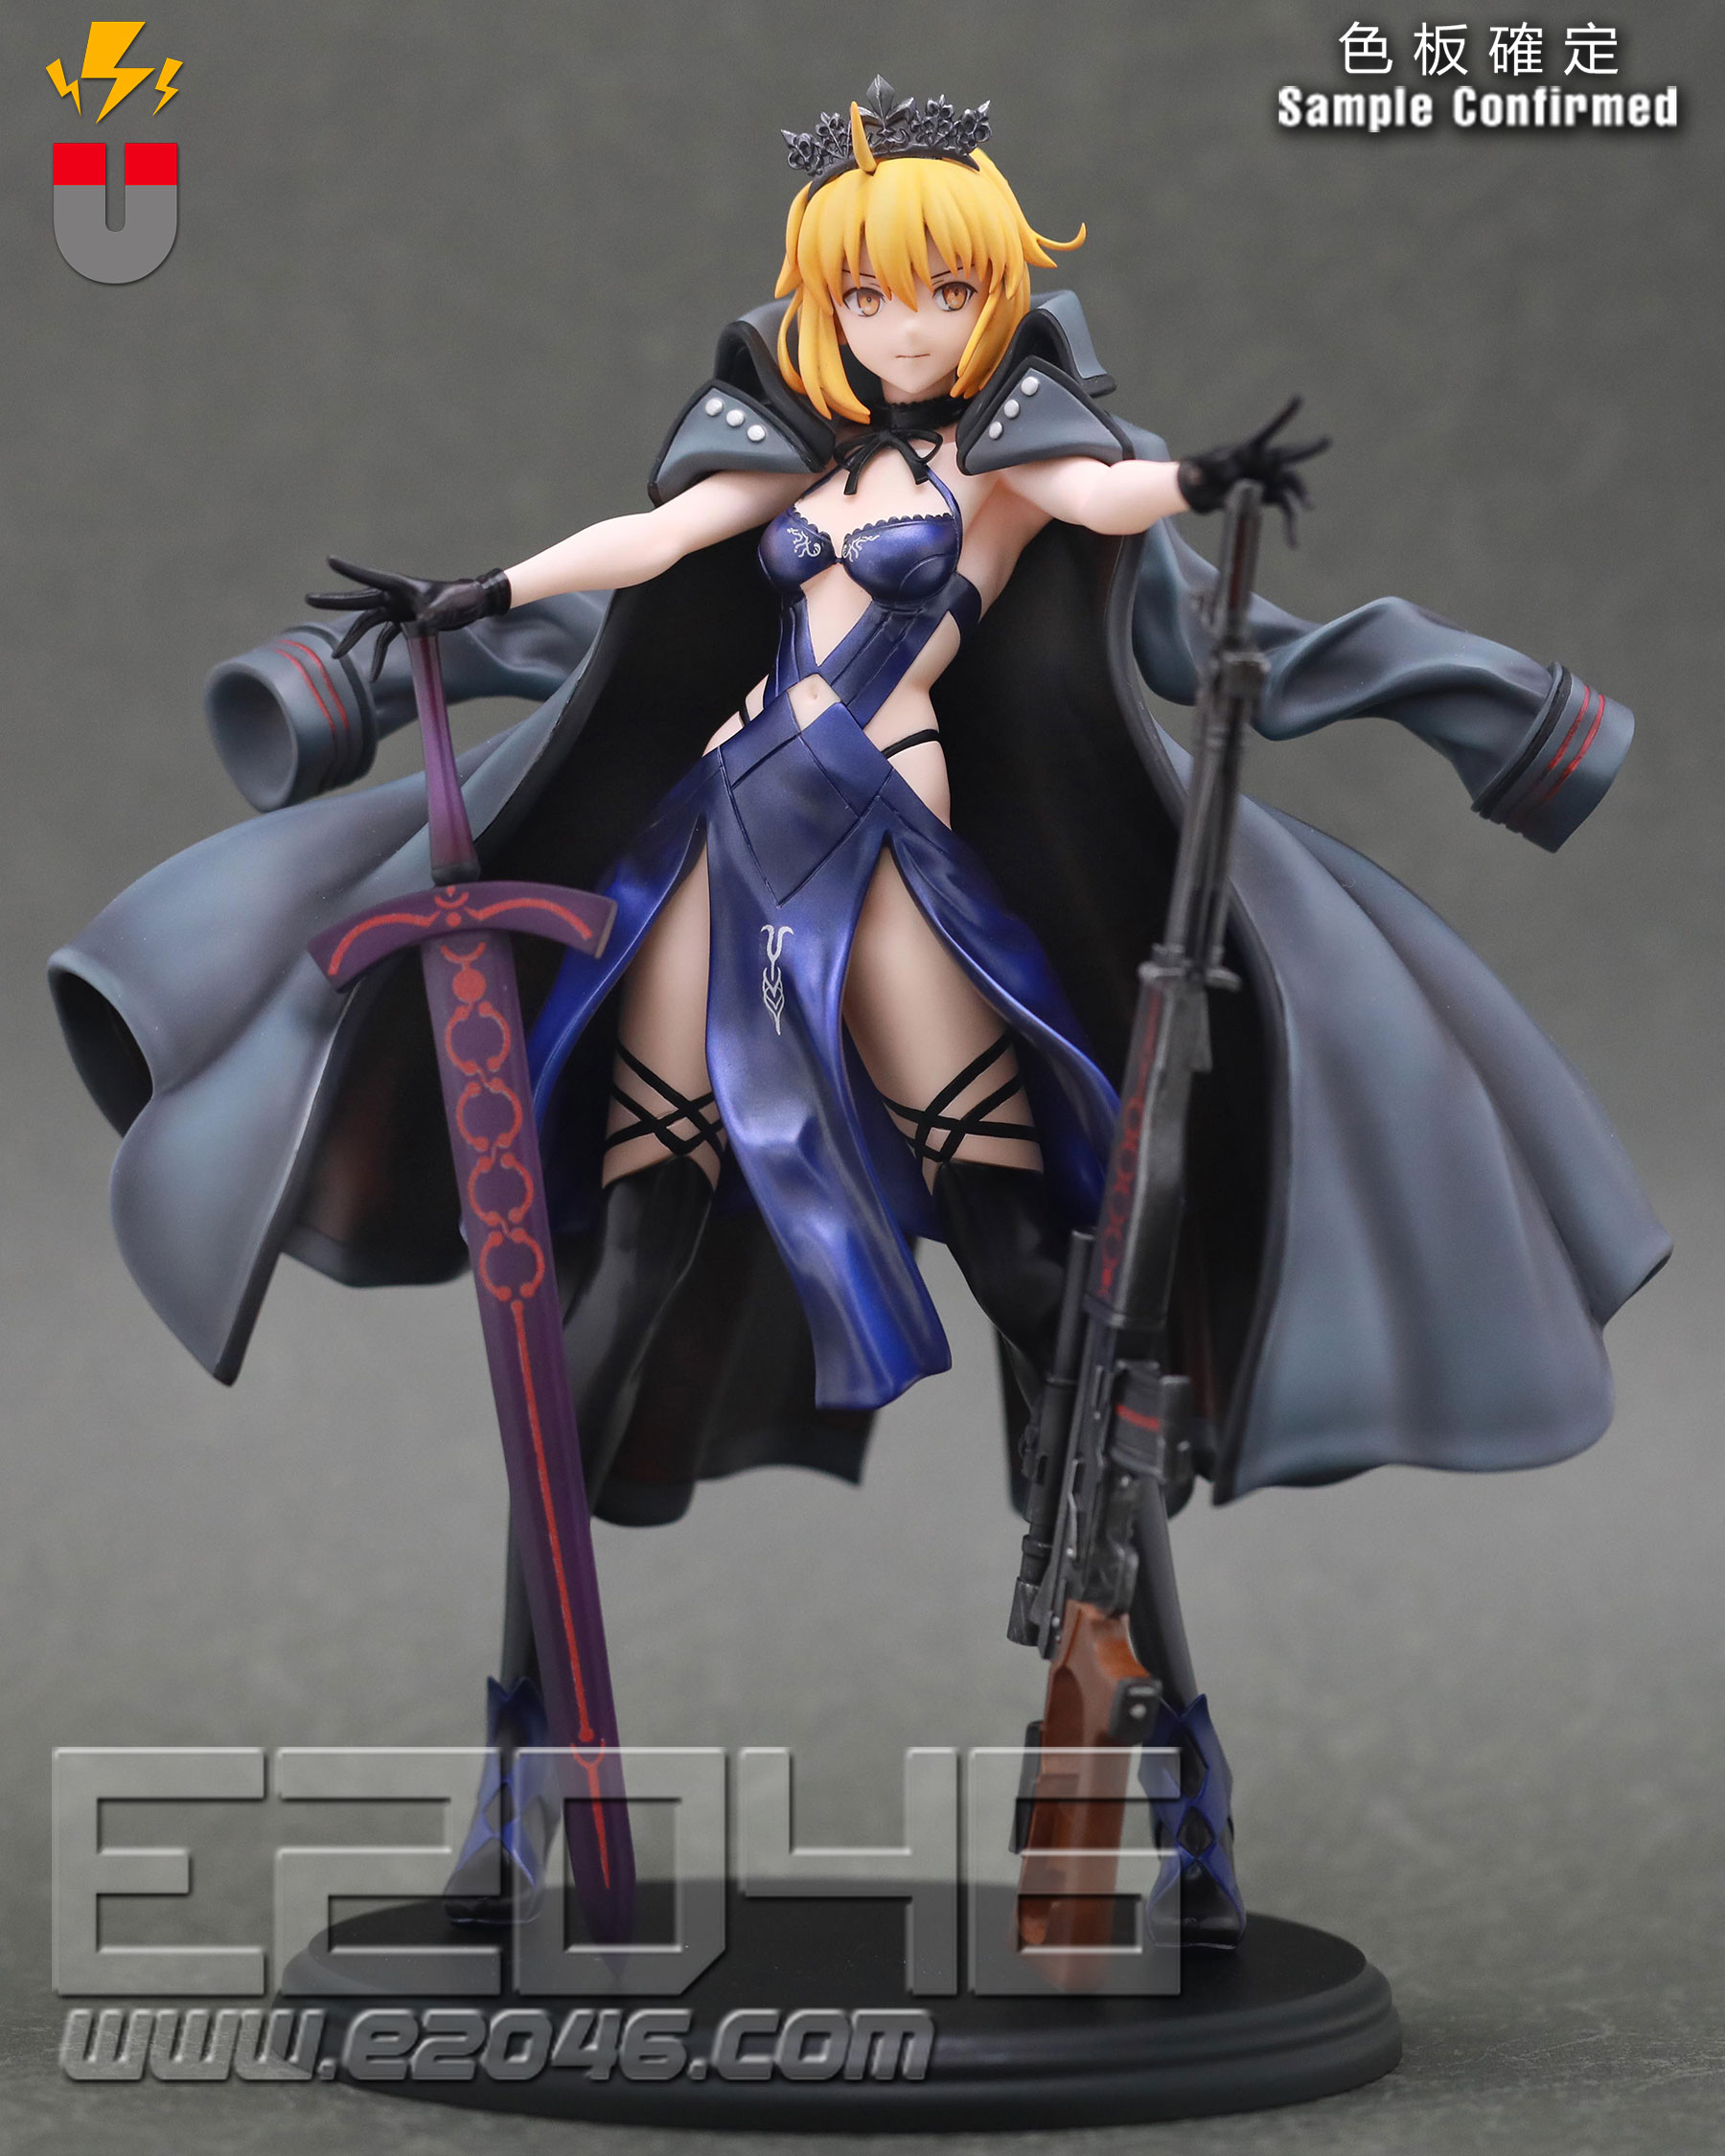 Altria Alter Swimsuit Version (Pre-painted)